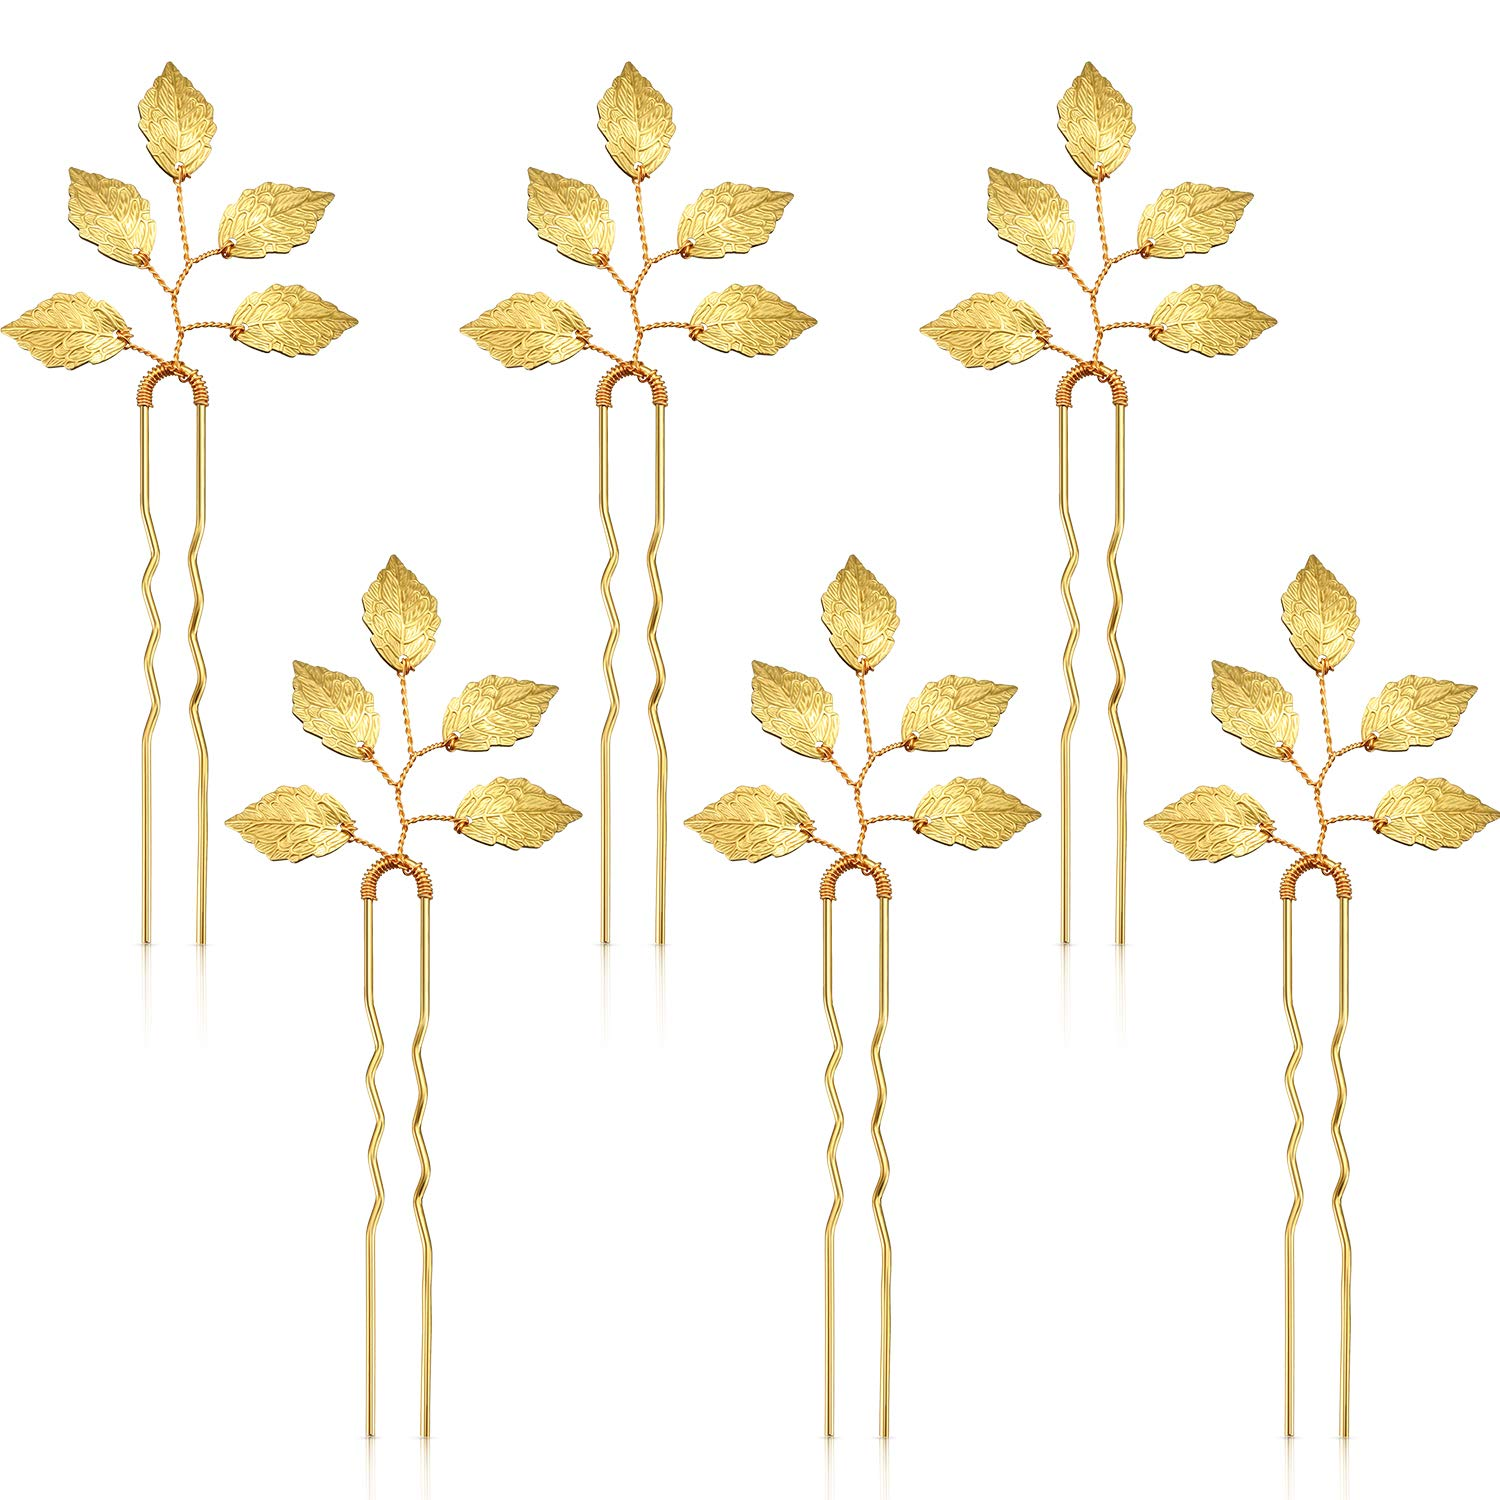 6 Packs Bride Gold Leaf Hair Pins, Vintage Leaves Hair Clip for Wedding Hair Pins, Bride and Bridesmaid Hairstyle Accessories by WILLBOND